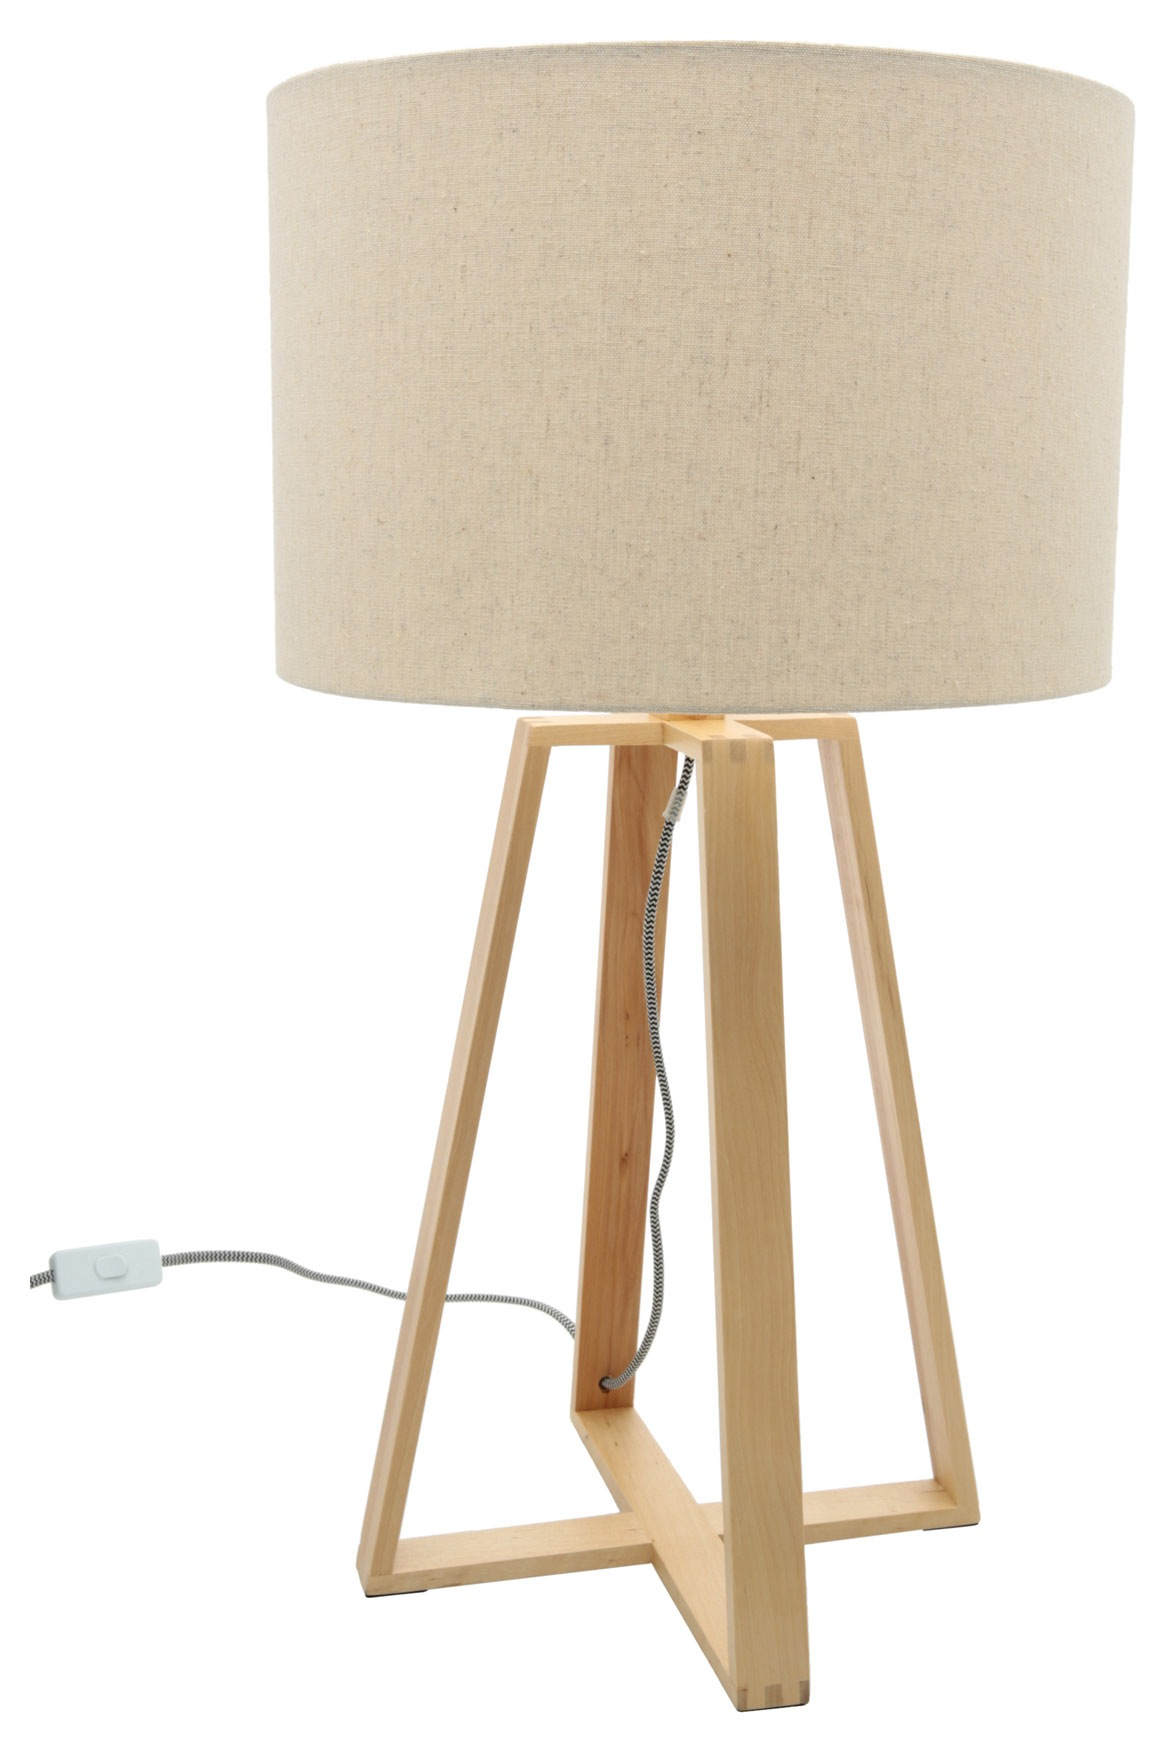 australian house garden natural wood base table lamp with natural sha. Black Bedroom Furniture Sets. Home Design Ideas